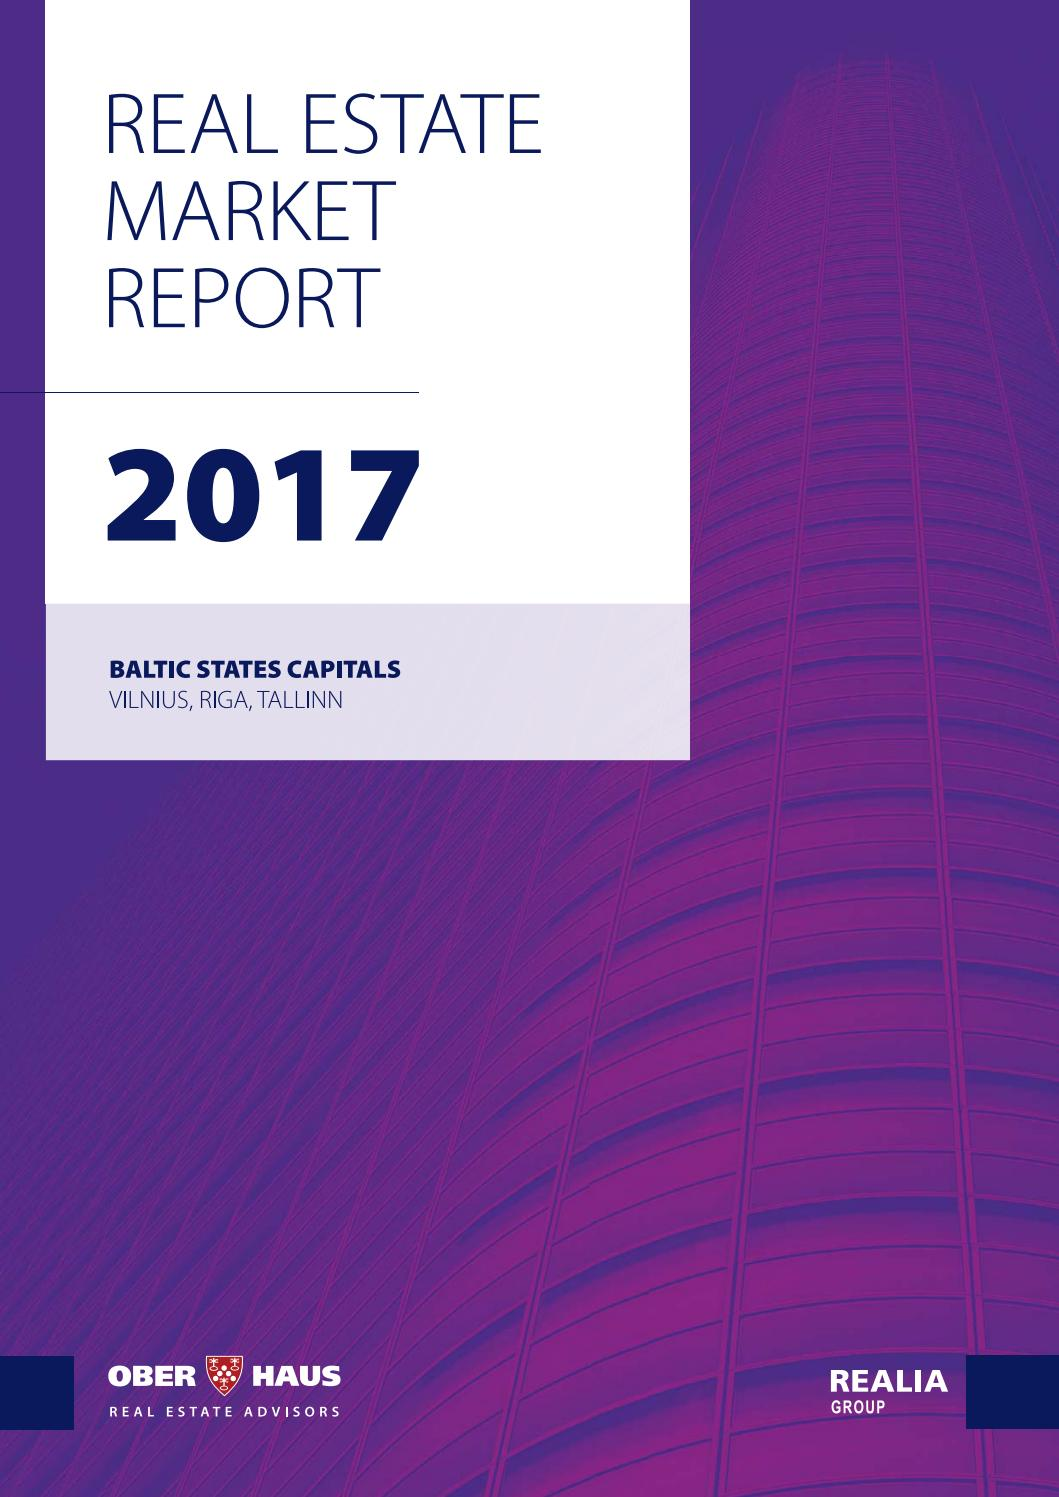 Cash Pool Homburg Ober Haus Real Estate Market Report 2017 By Ober Haus Issuu